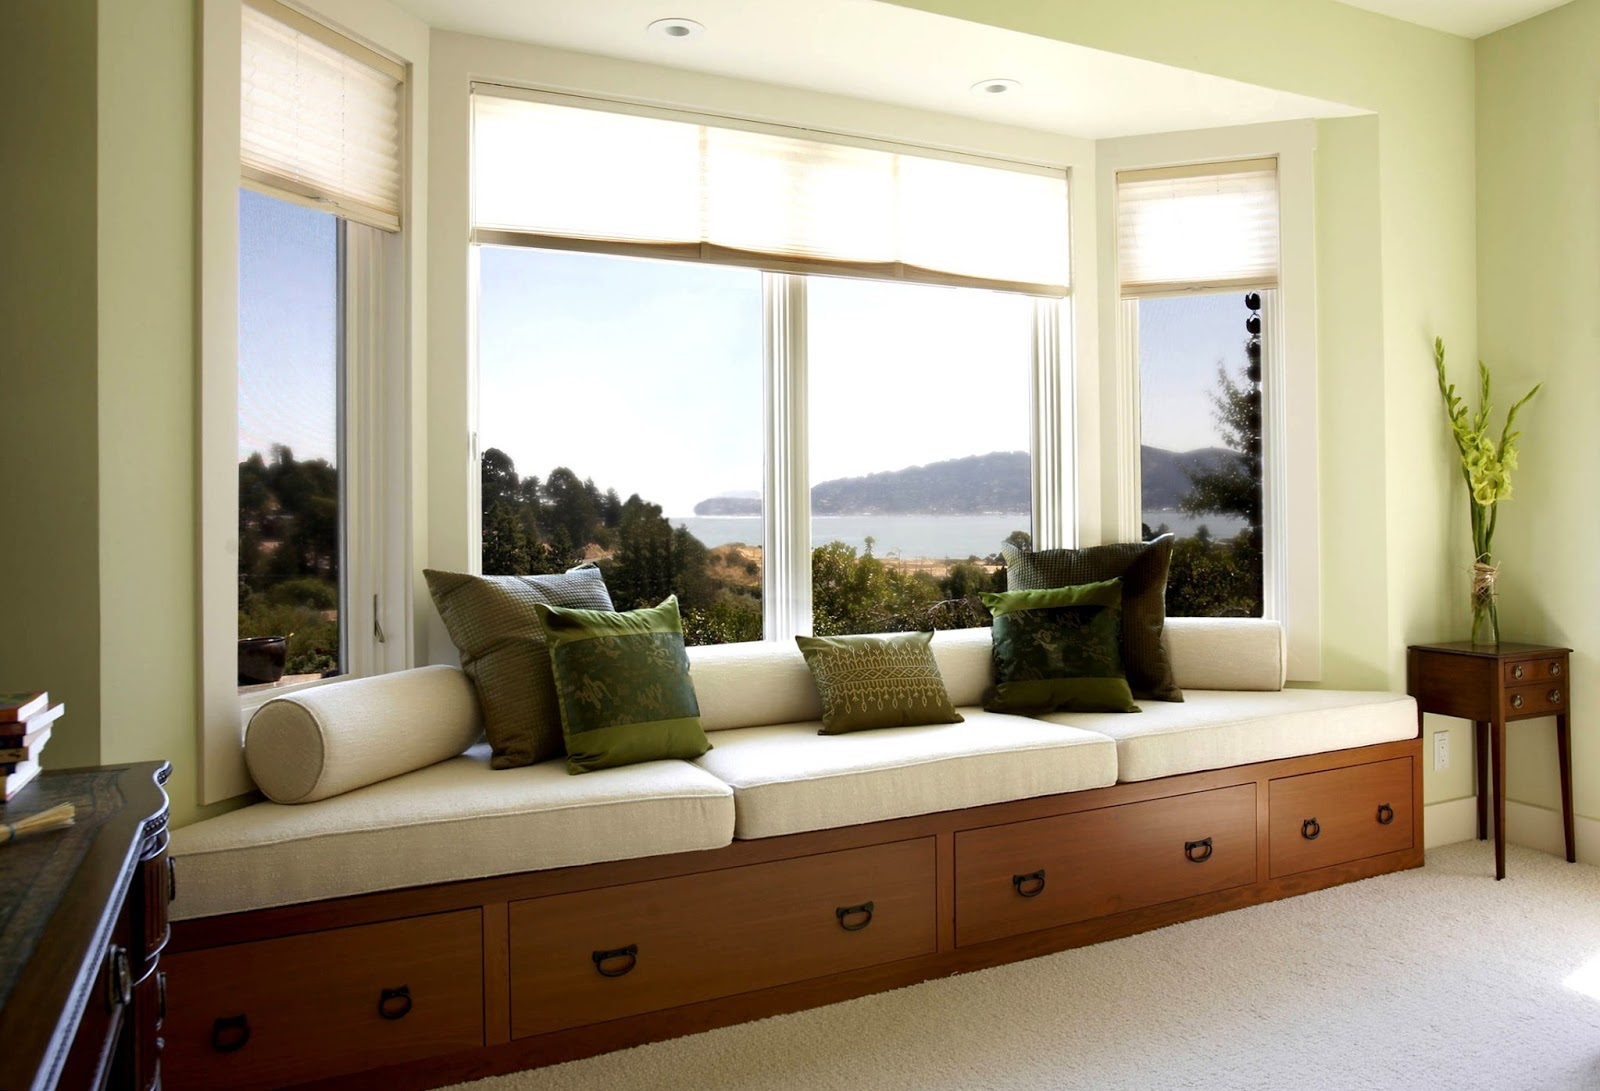 Amazing View Value Window Seat Bench Target Window Seat Bench Cushion This Minimalist Window Seat Minimalist Window A Element houzz-02 Window Seat Bench